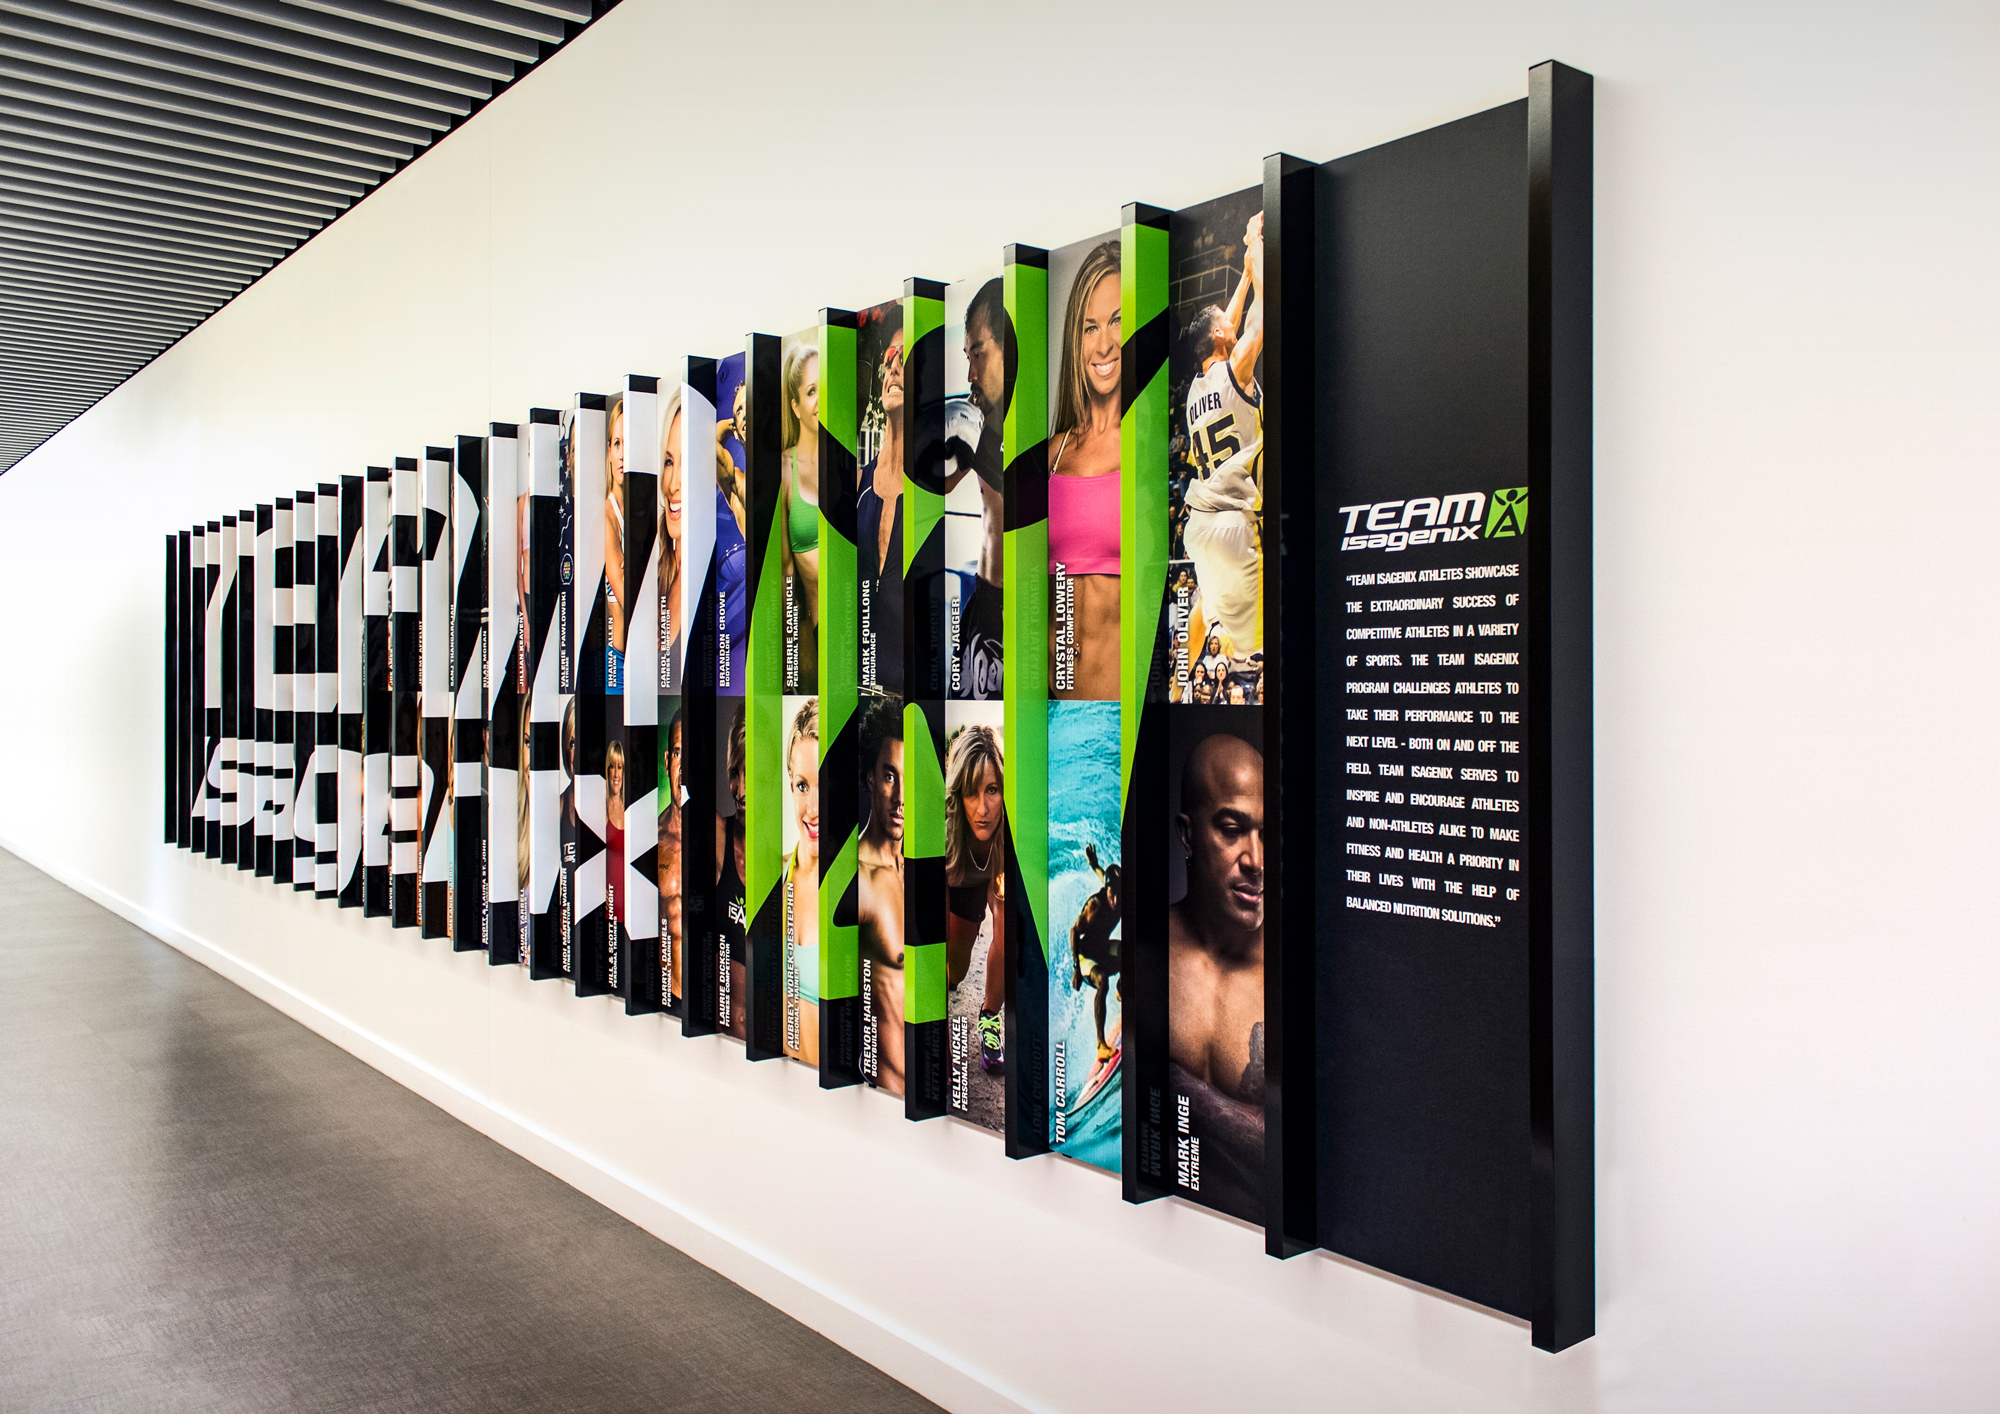 Team Isagenix is displayed down an office corridor.The custom display uses both direct print on Gatorfoam and wrapped aluminum tubing.